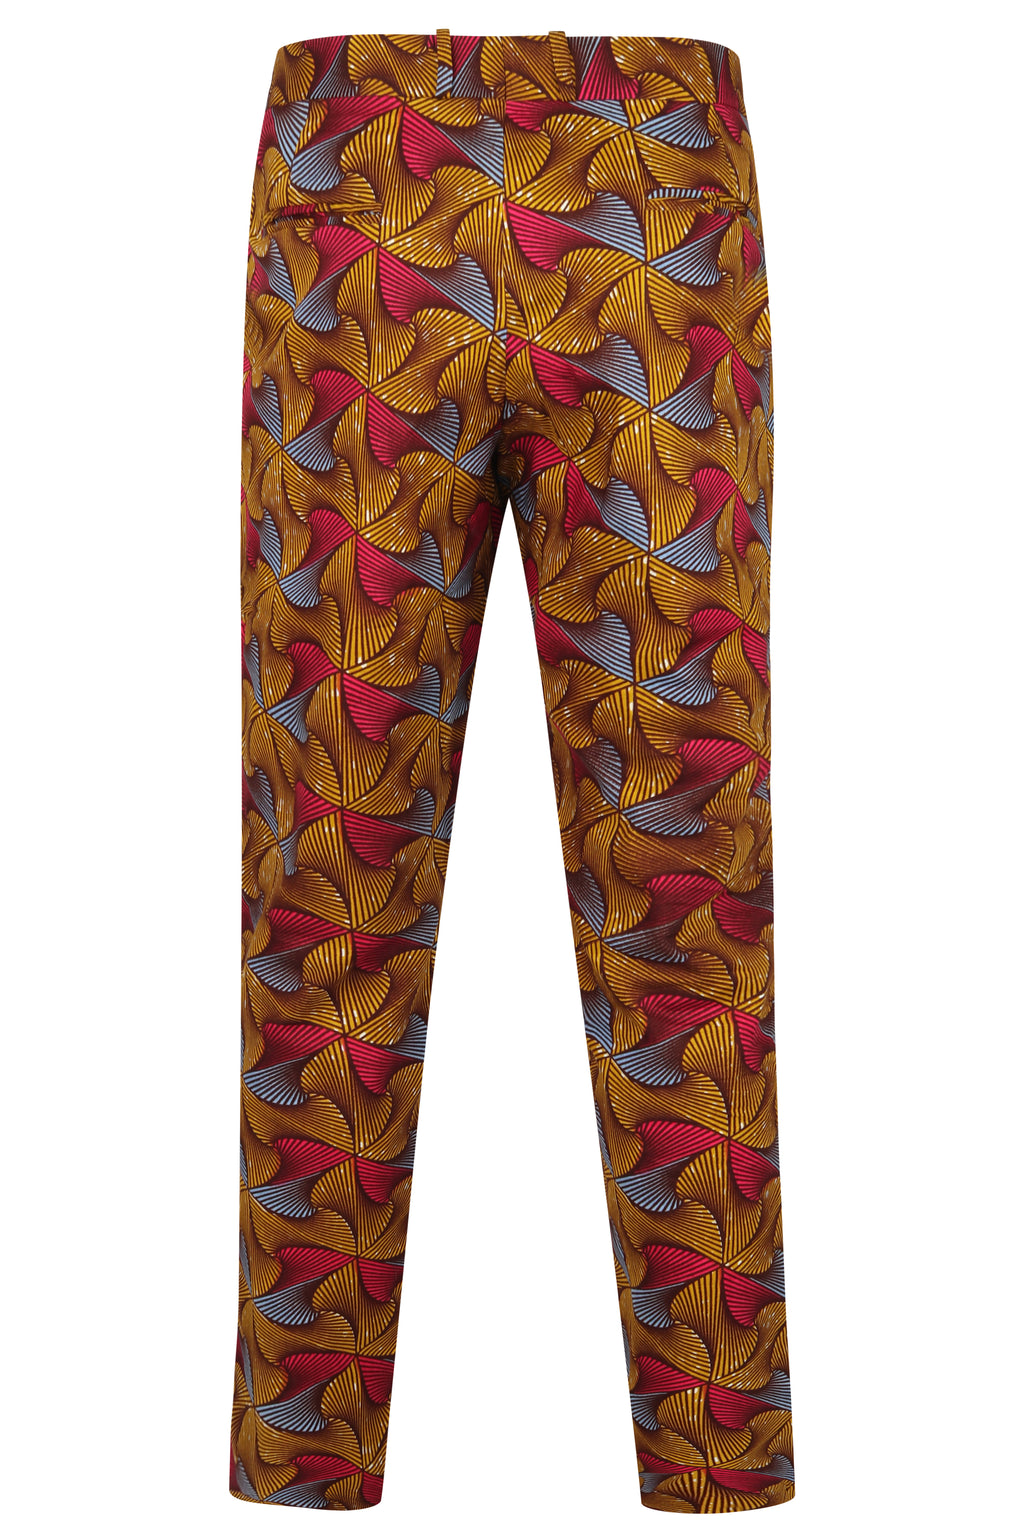 Men's African print Fitted trousers-Crossways